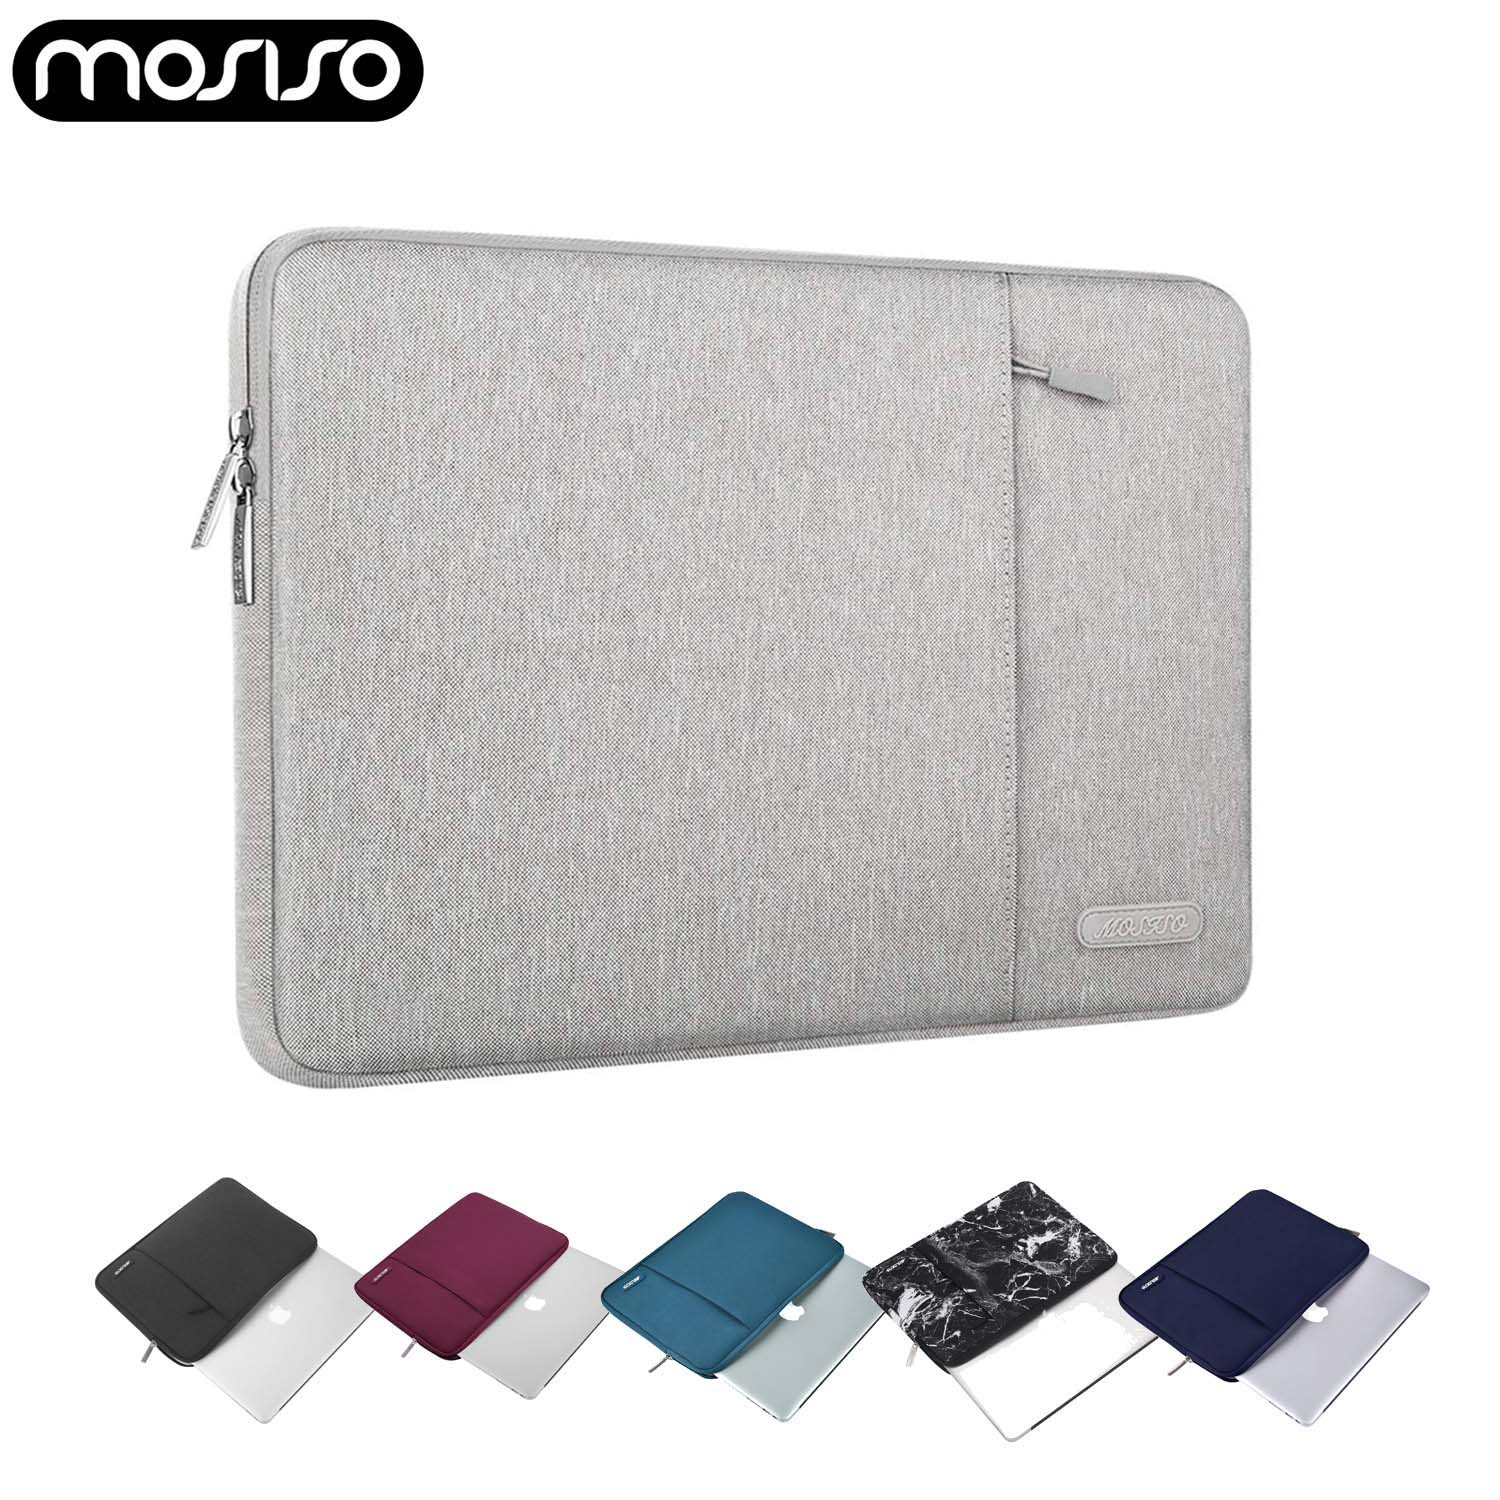 MOSISO Laptop Sleeve Bag 10.5 11 13 14 15 Inch For Macbook Pro Air Notebook 15.6 Soft Sleeve Case For Dell Asus Lenovo HP Acer